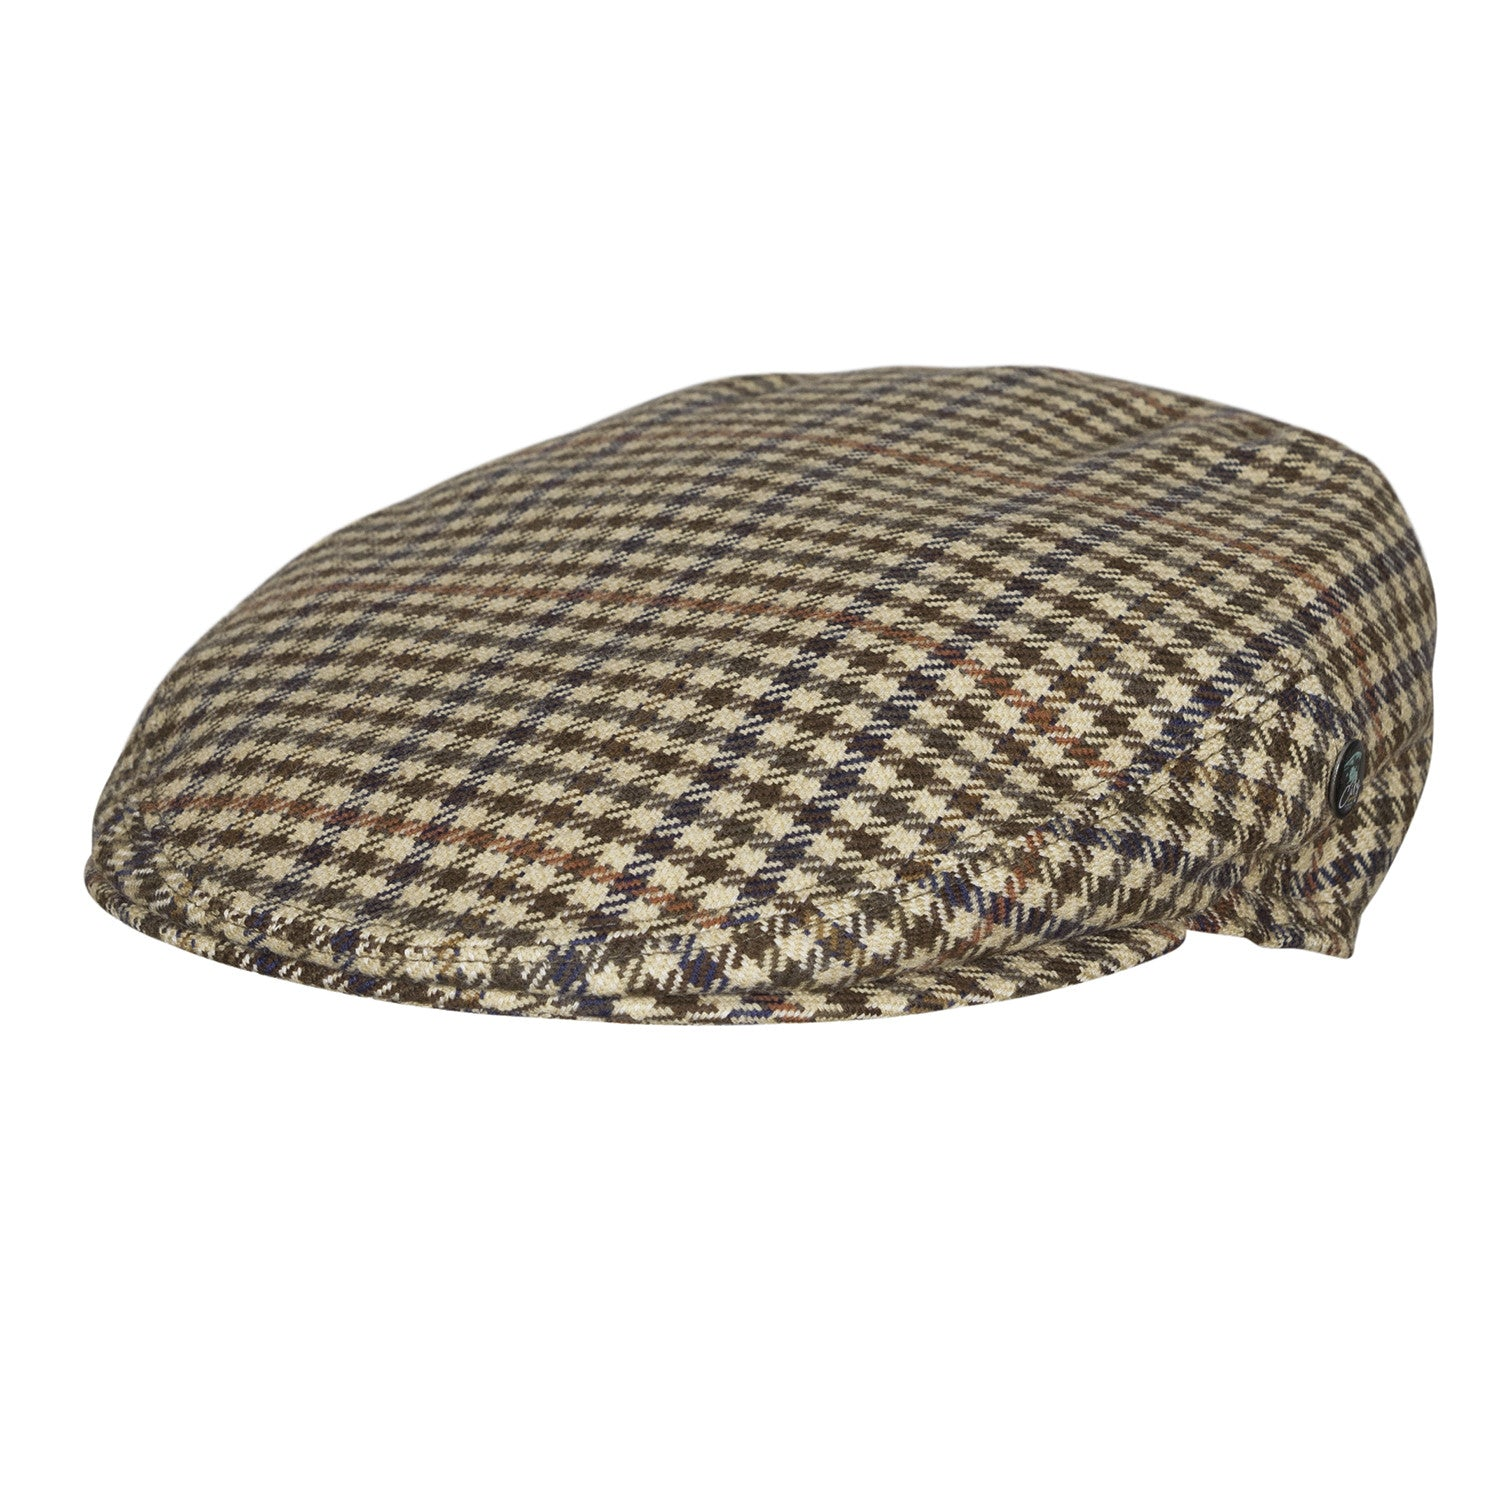 City Sport - Wool Cashmere Ear Flap Cap - Houndstooth Brown Multi ... 2d5f9ae12dc